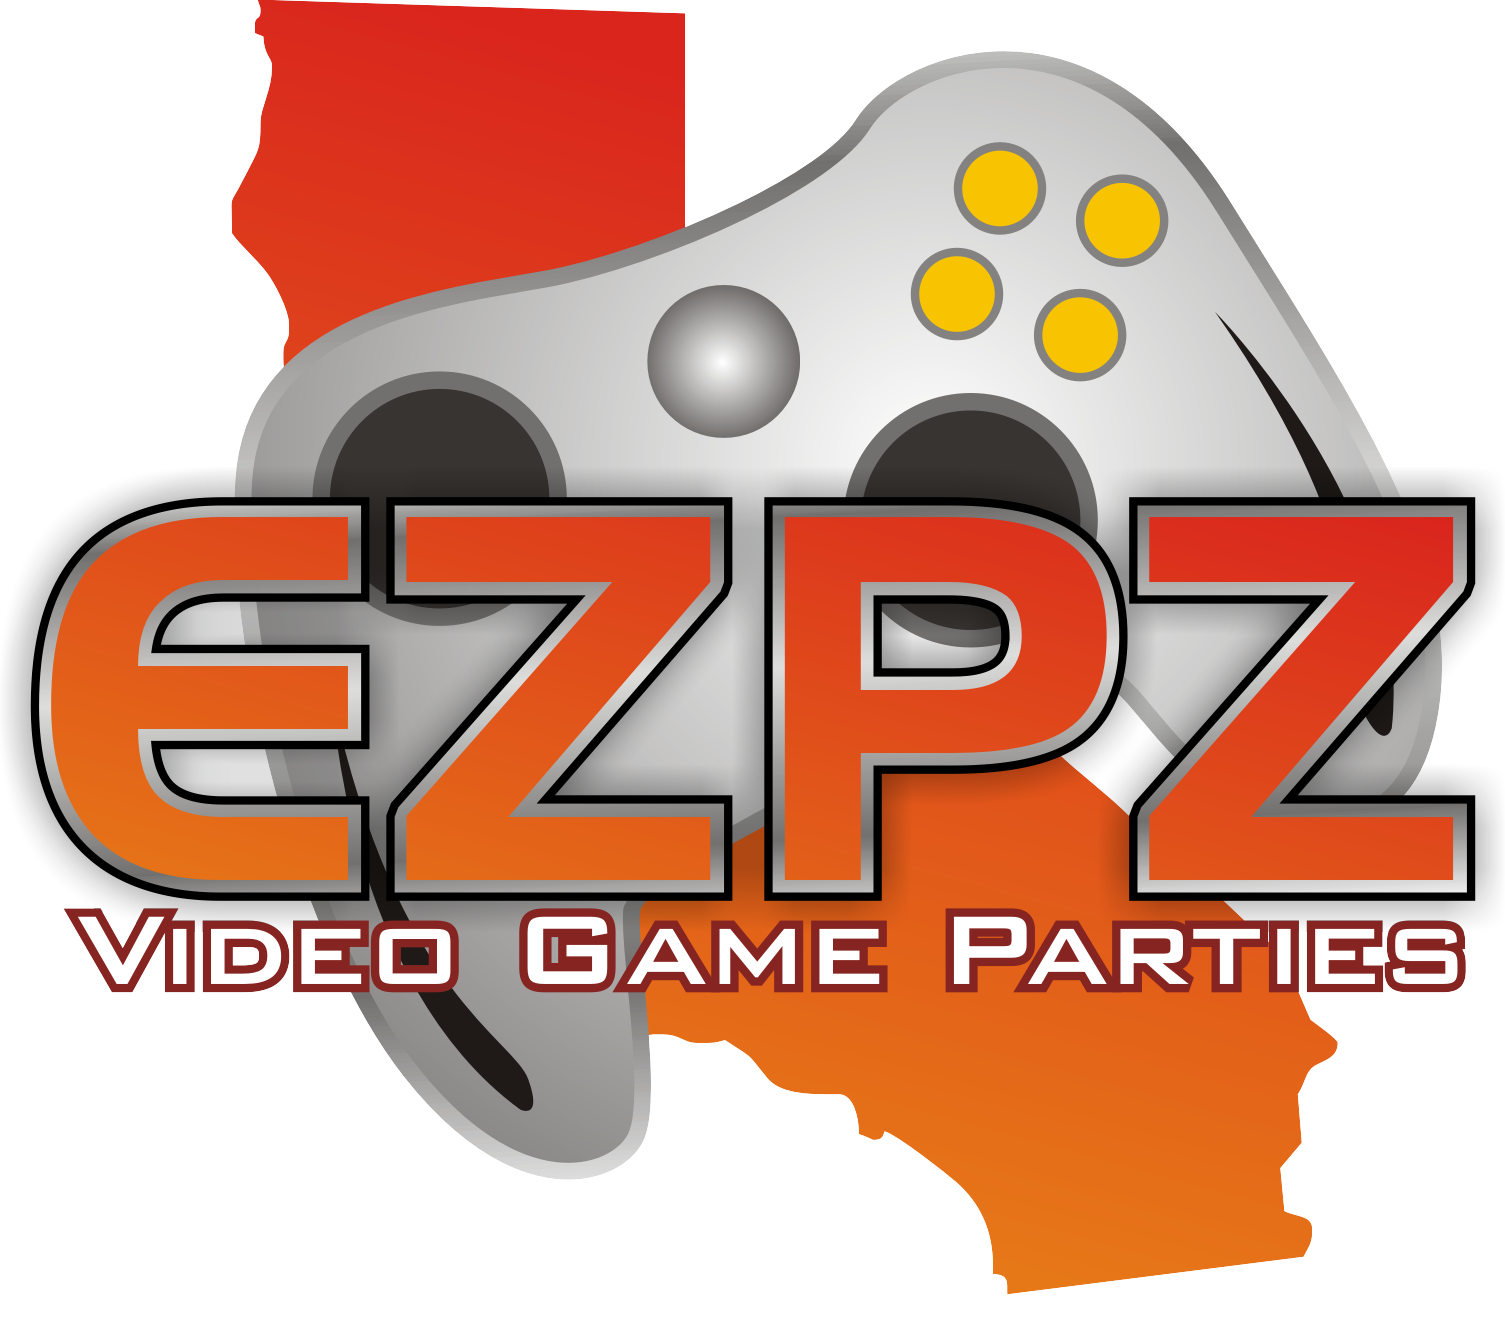 Pictures for kids busy with video games png pictures. Faq ezpz game party